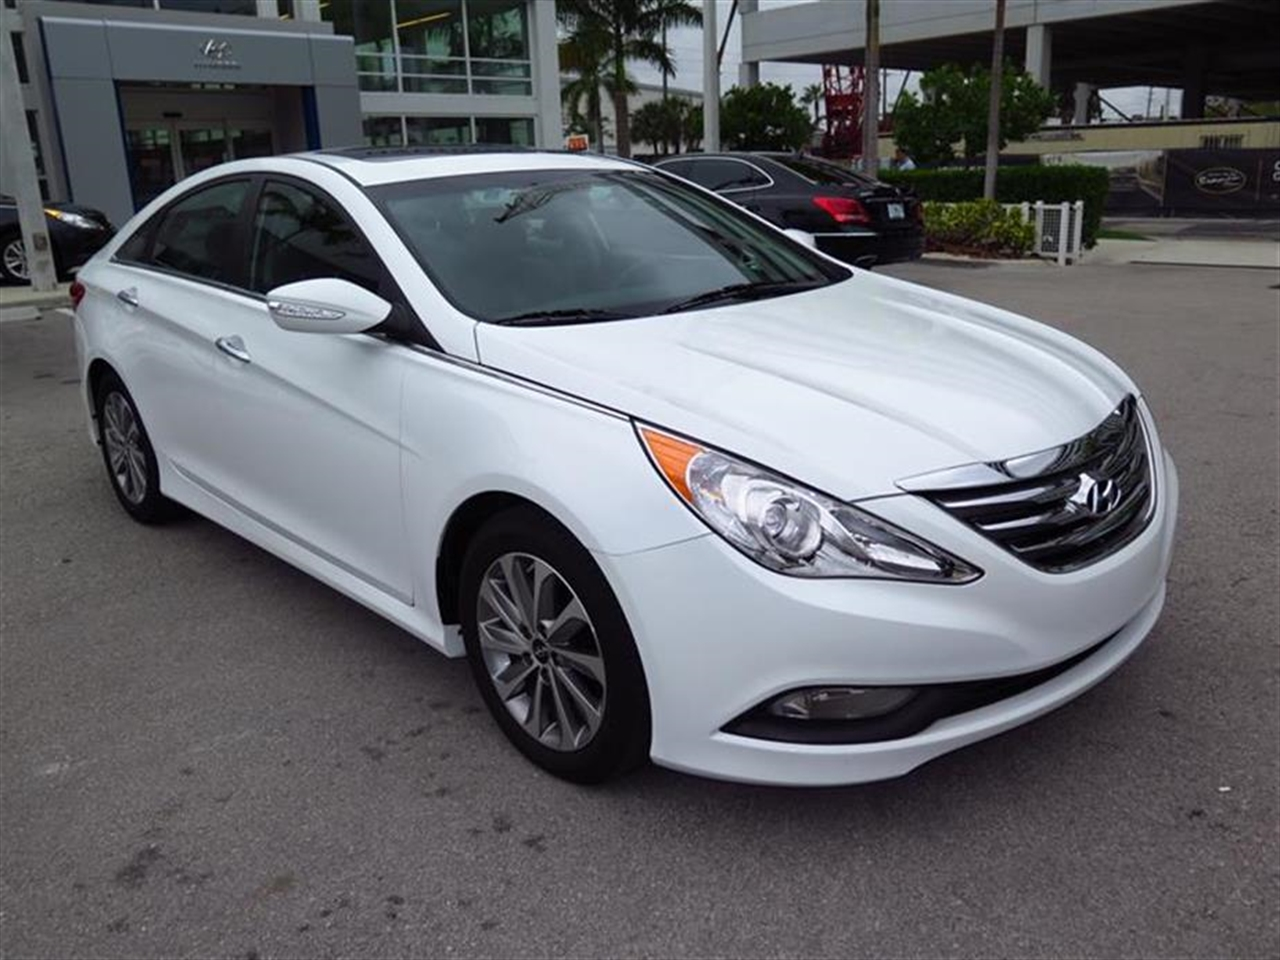 2014 HYUNDAI SONATA 4dr Sdn 24L Auto Limited 12199 miles 2 12V DC Power Outlets 5 Person Seating